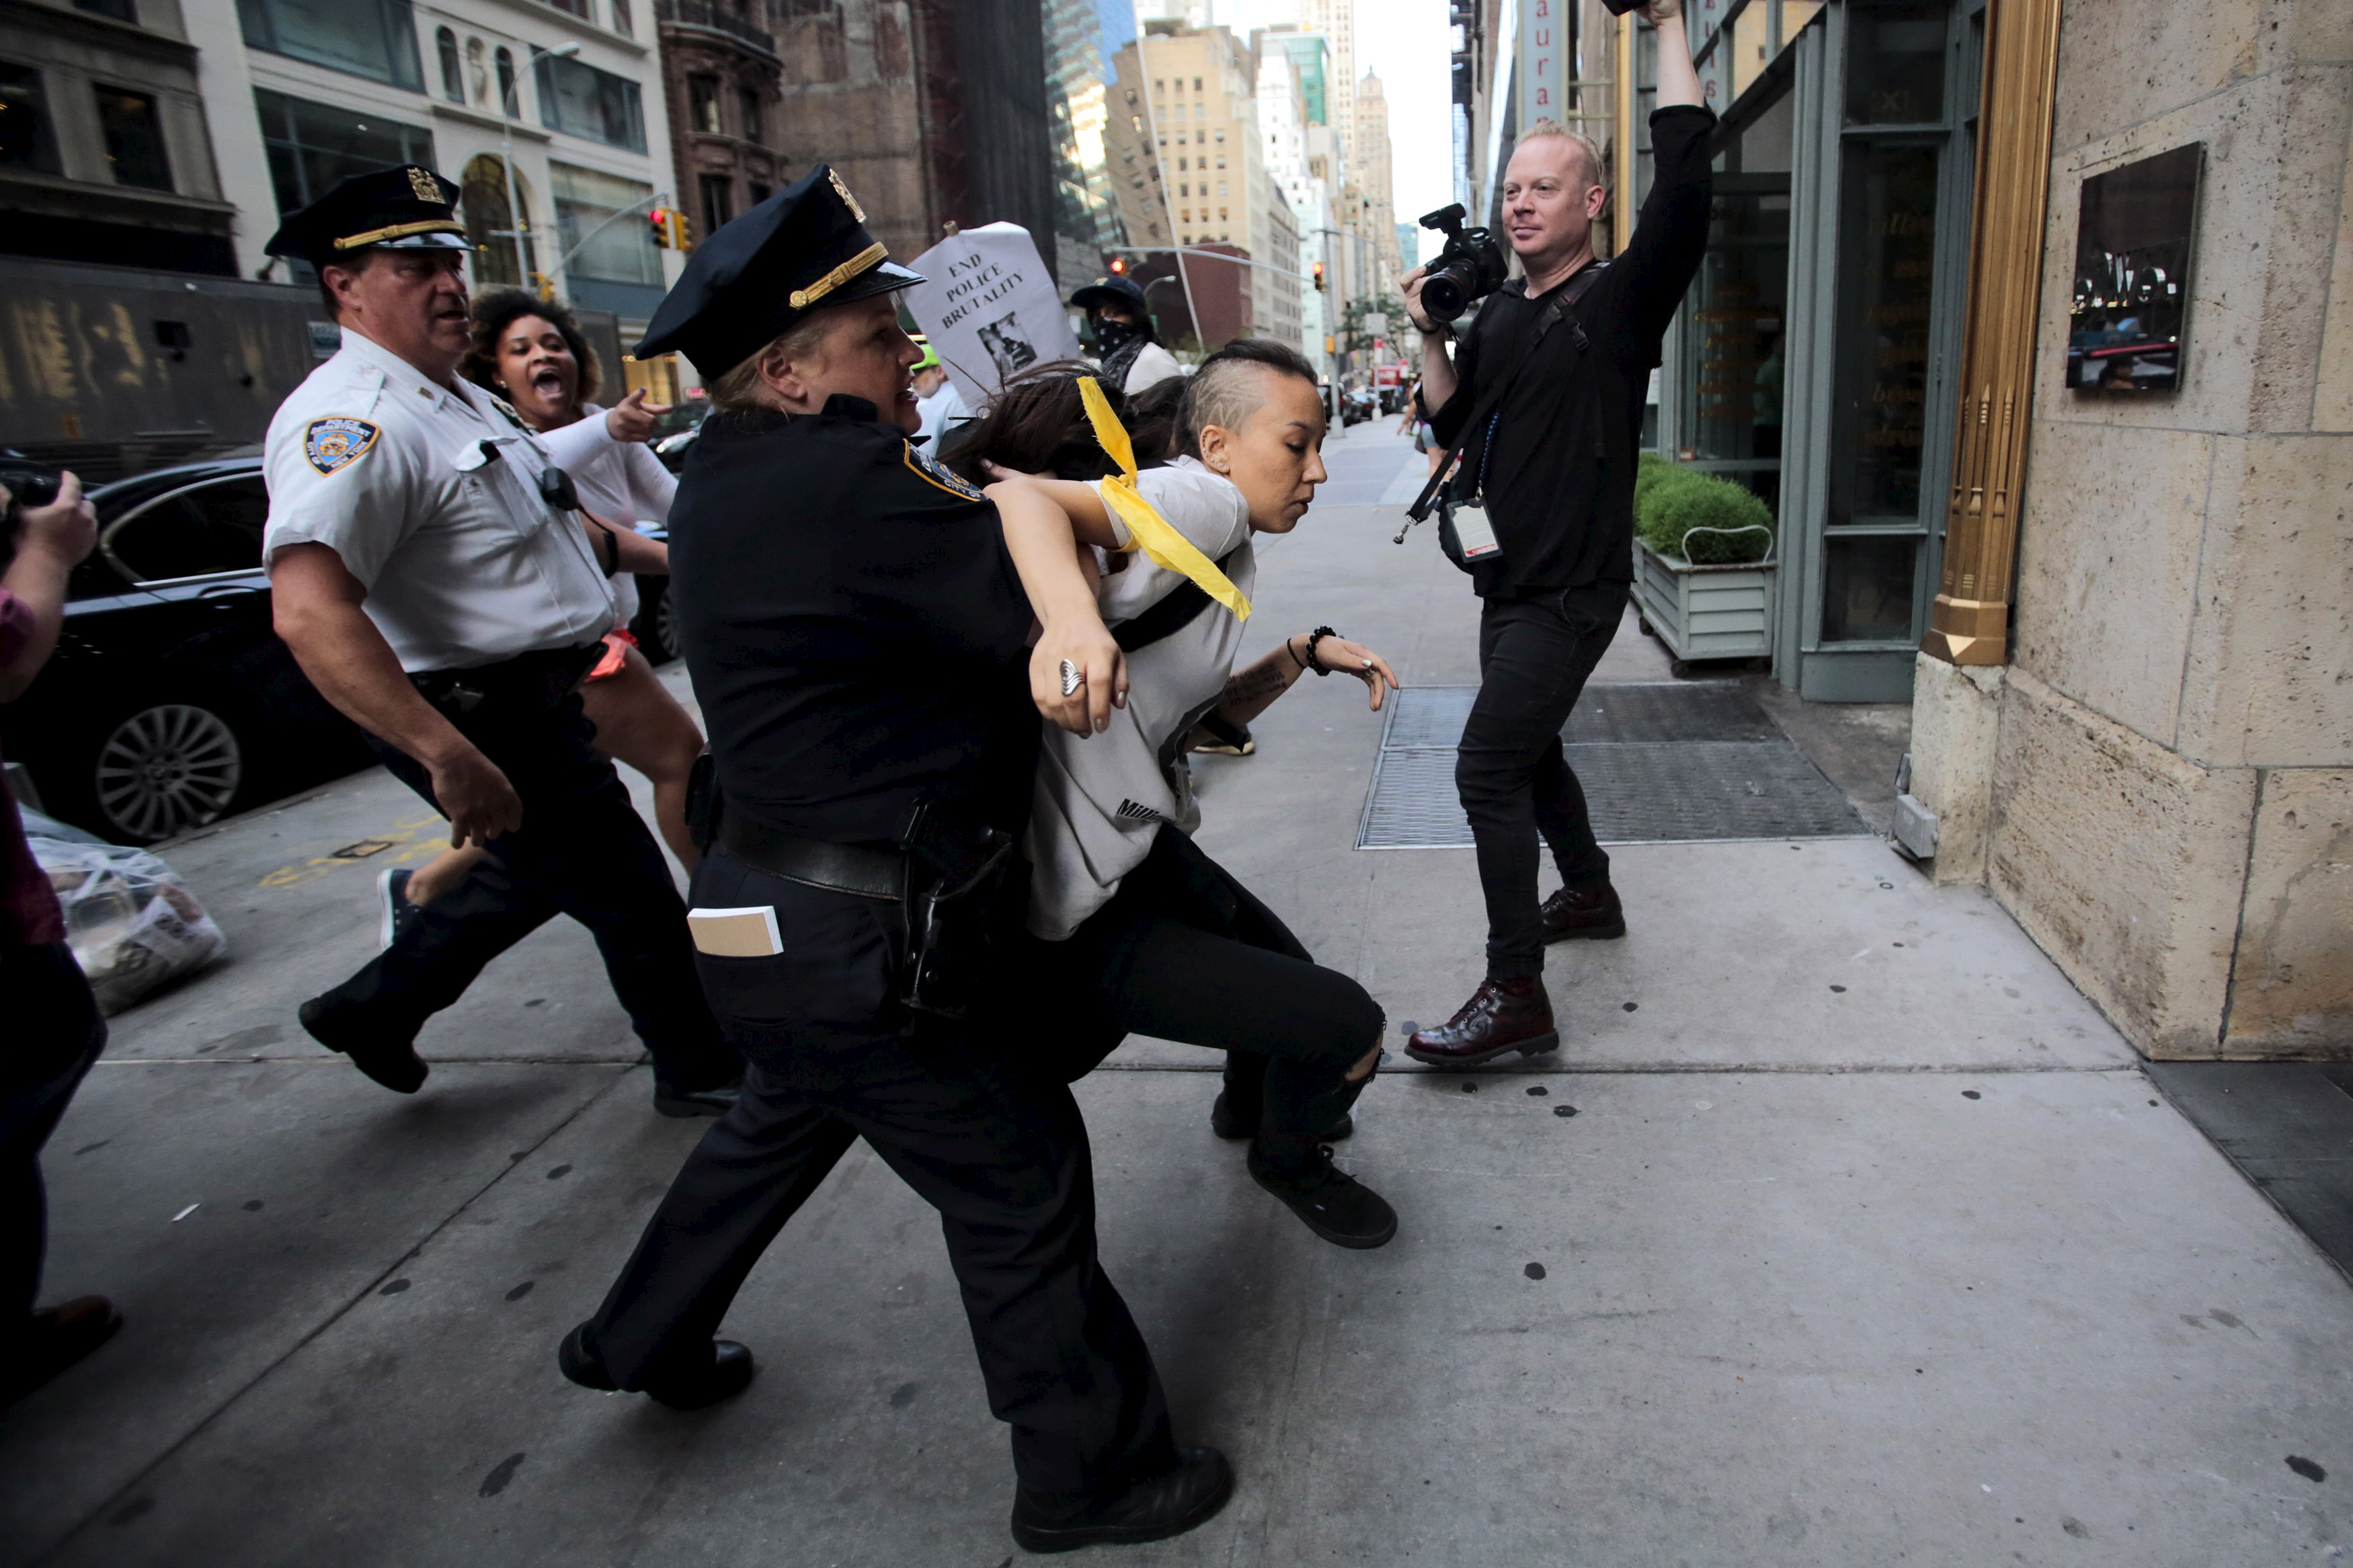 A protester is detained on July 17 by New York Police Department officers during a rally for Eric Garner who was killed one year ago by police in New York. Family and supporters on Friday marked the anniversary with rallies and vigils demanding police reforms and justice in the controversial case. Photo by Eduardo Munoz/Reuters